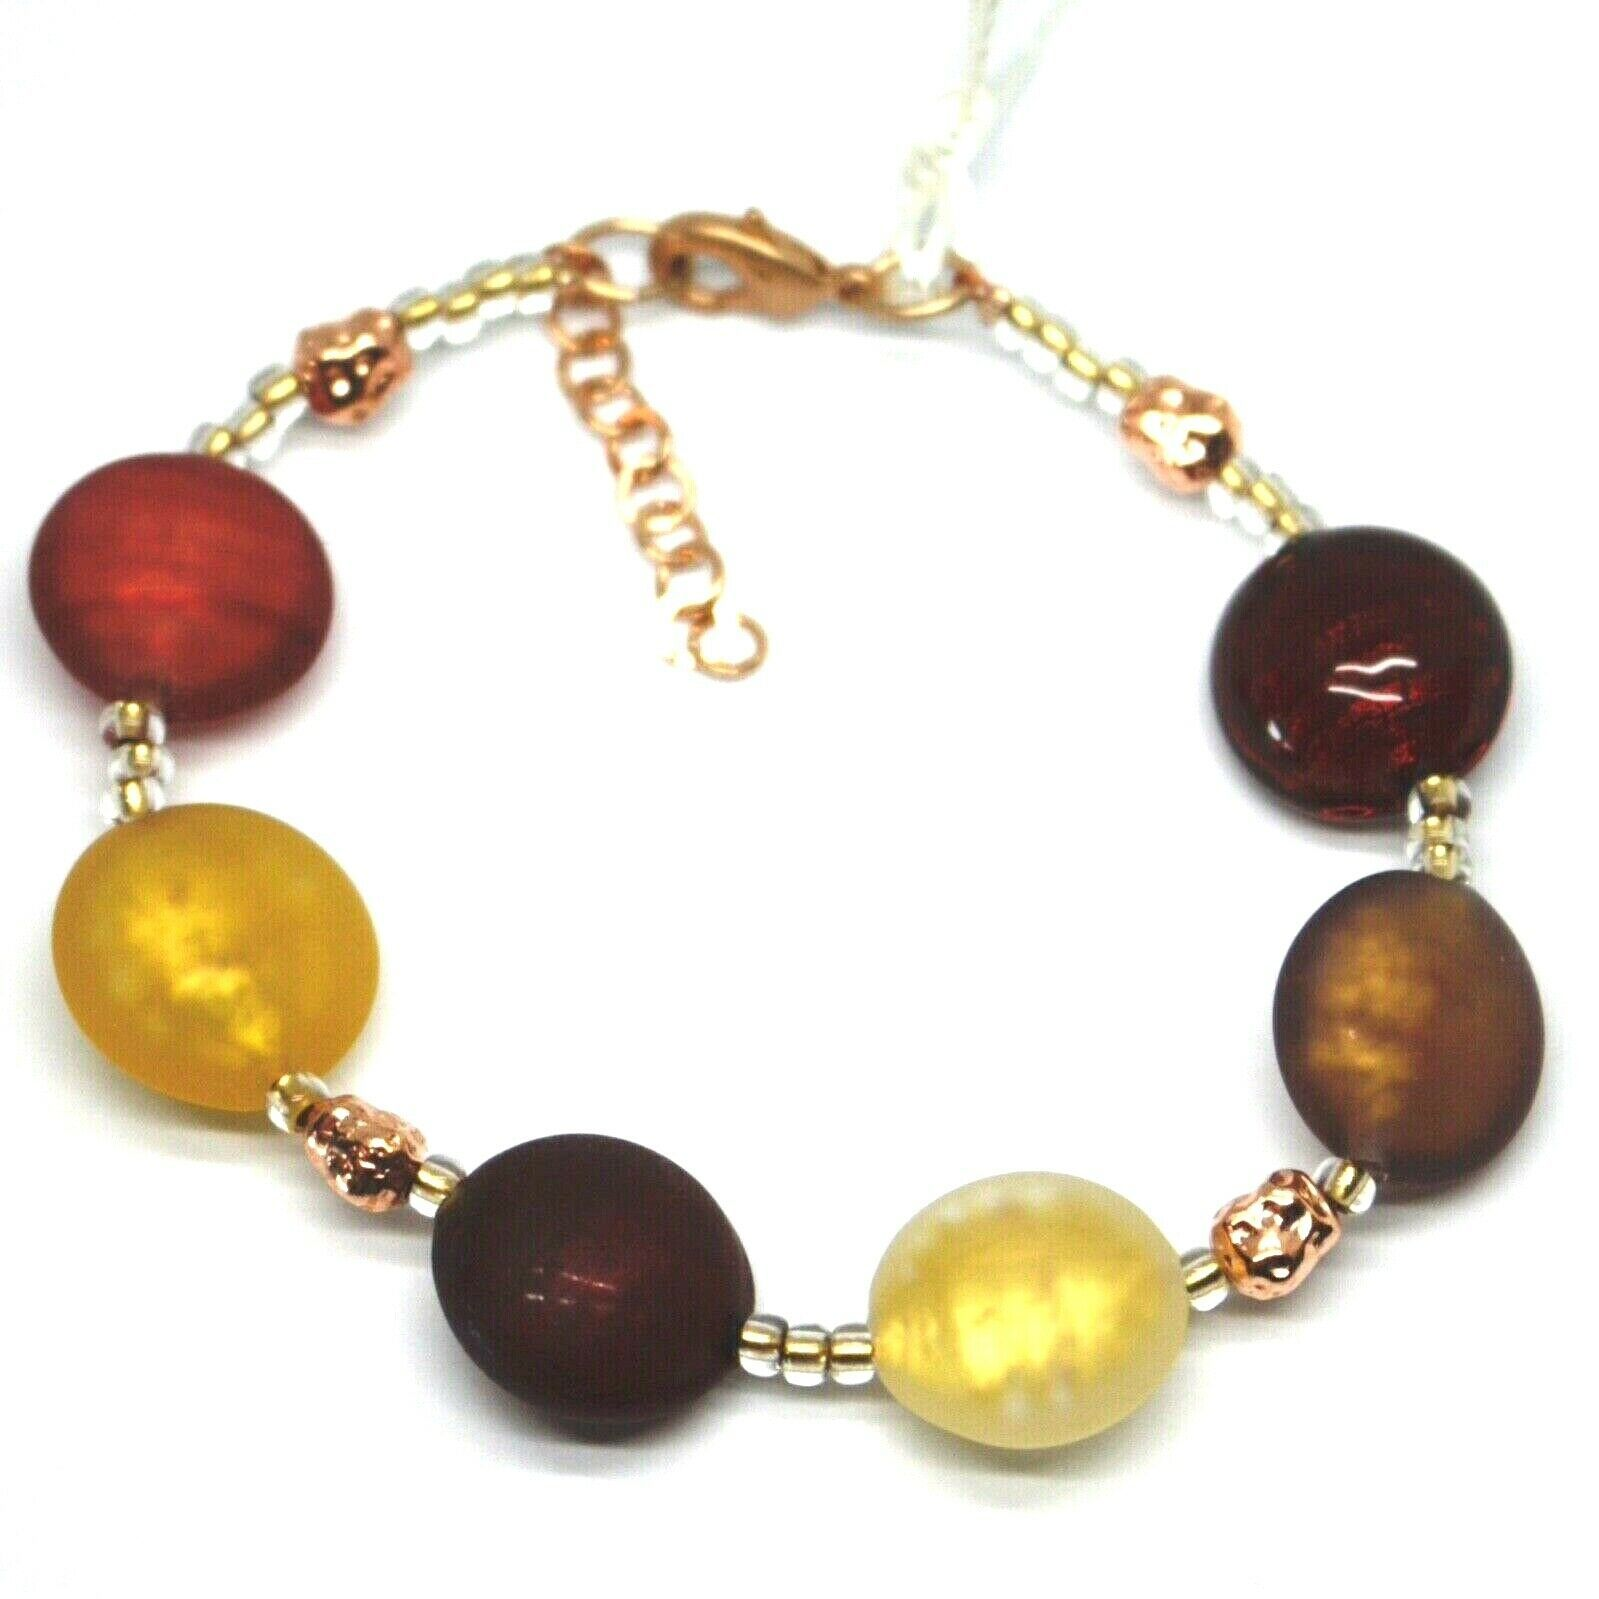 "BRACELET RED BROWN YELLOW ROUNDED MURANO GLASS DISC, 19cm, 7.5"", MADE IN ITALY"